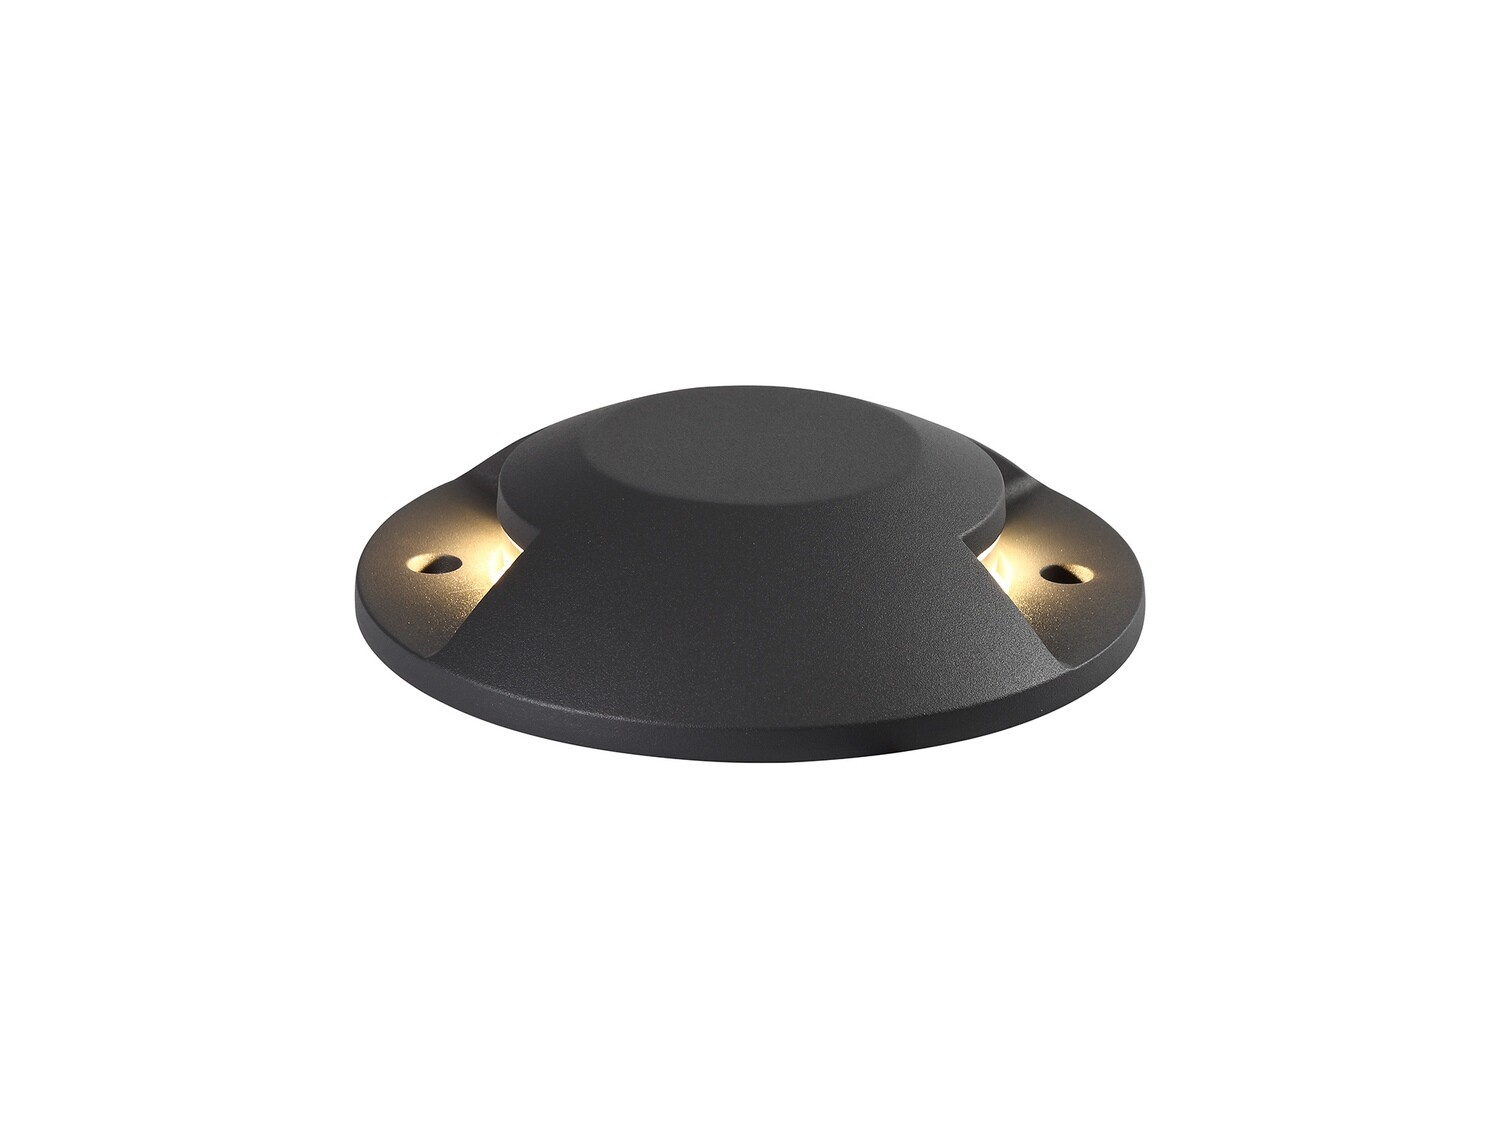 Umbriel above on ground Driveover 2 Light, 2 x 6W LED, 3000K, 256lm, IP67, IK10, Anthracite